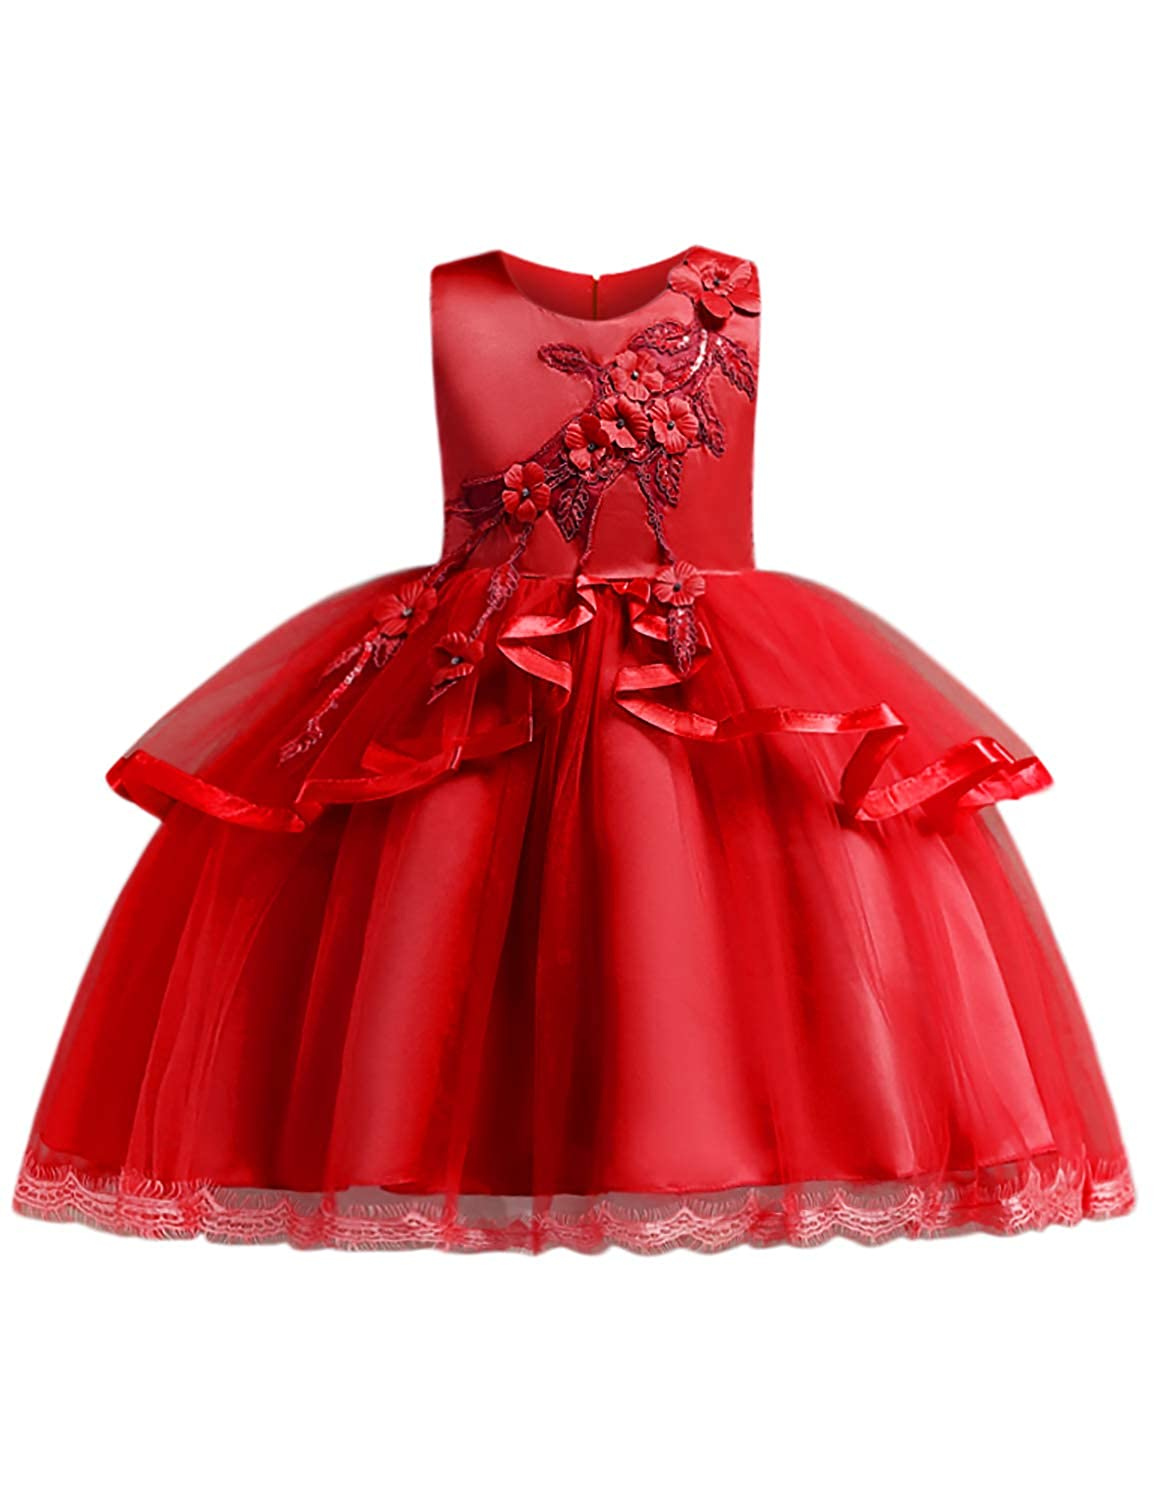 Amazon.com: Blevonh Girls Sleeveless Bridesmaid Ruffles Wedding Dresses Kids Ball Gown: Clothing